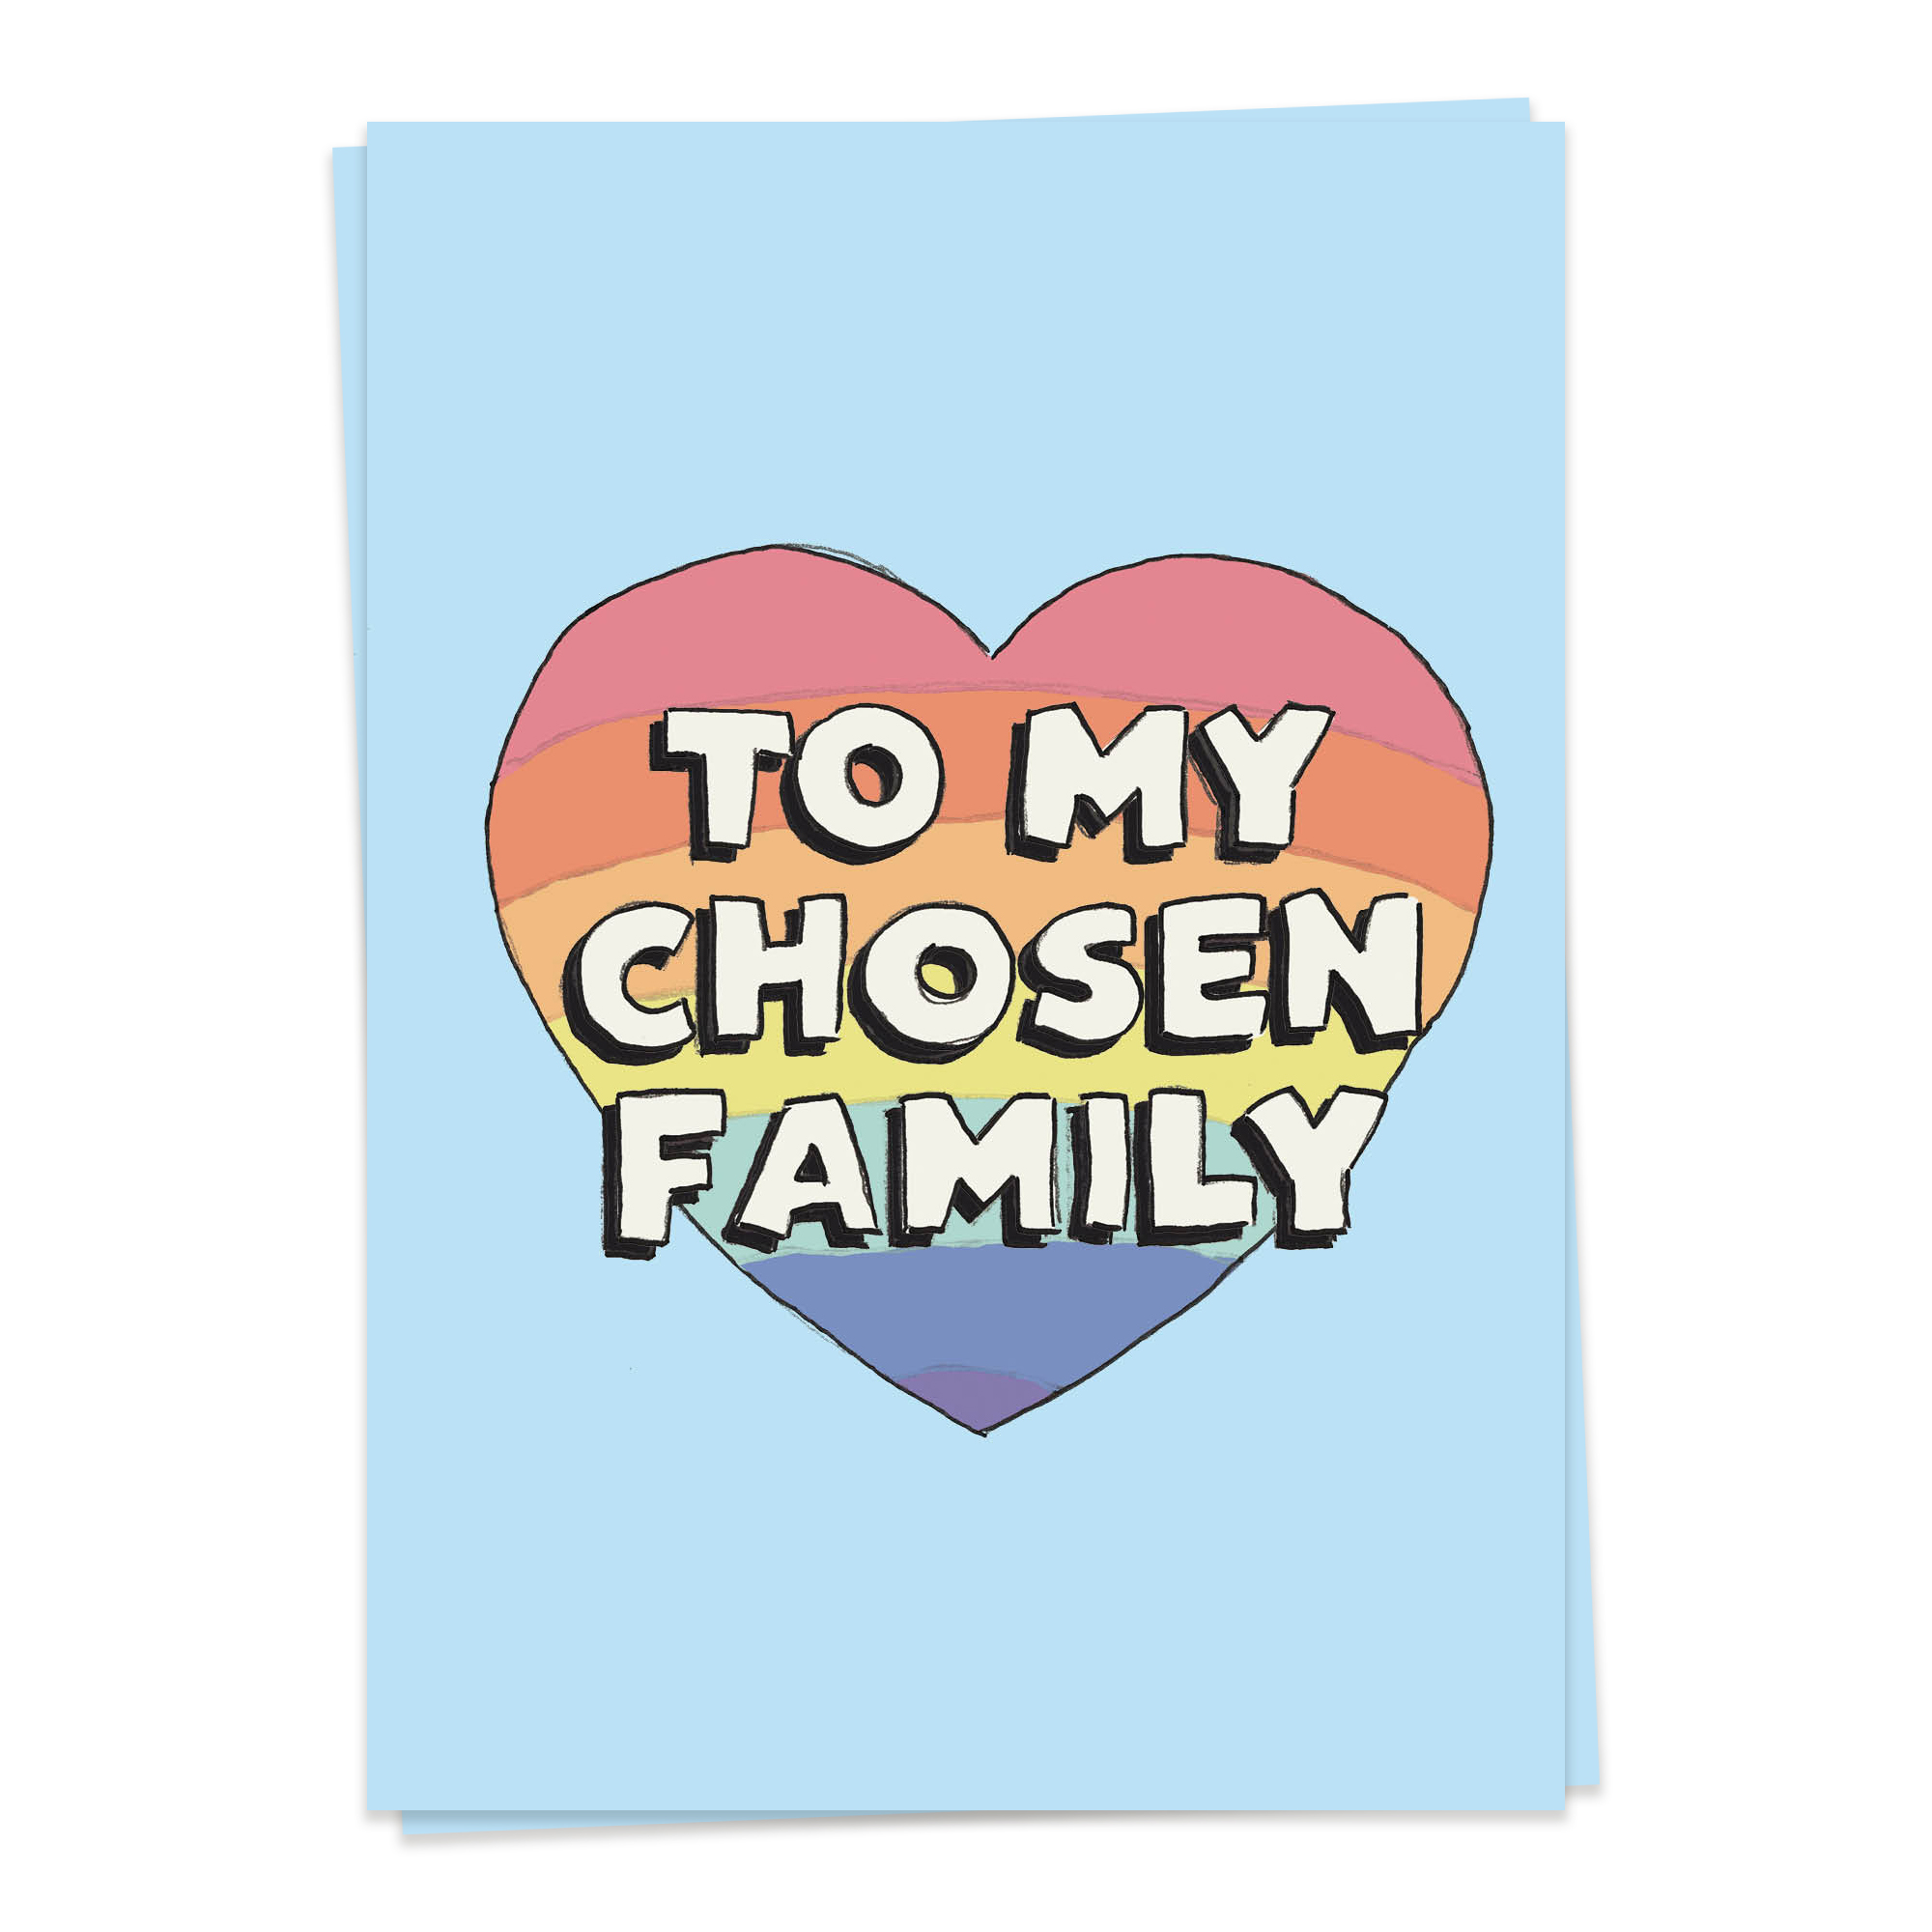 LGBTQ – Chosen family